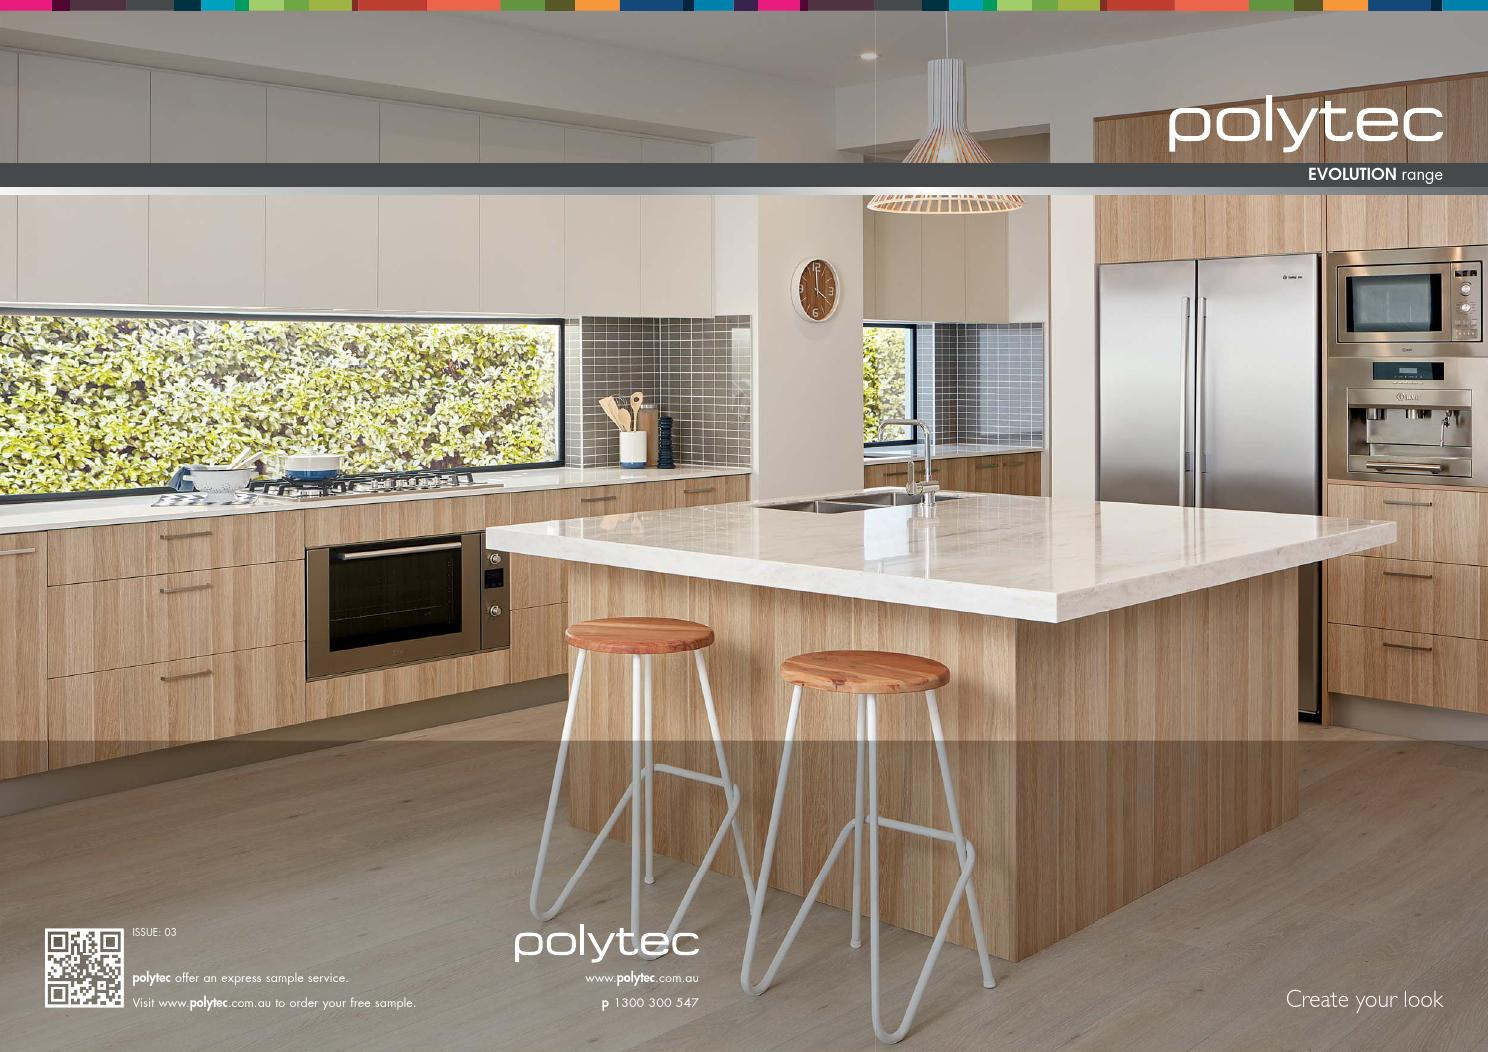 Kitchens By You Polytec Evolution Range By Kitchens By You Issuu